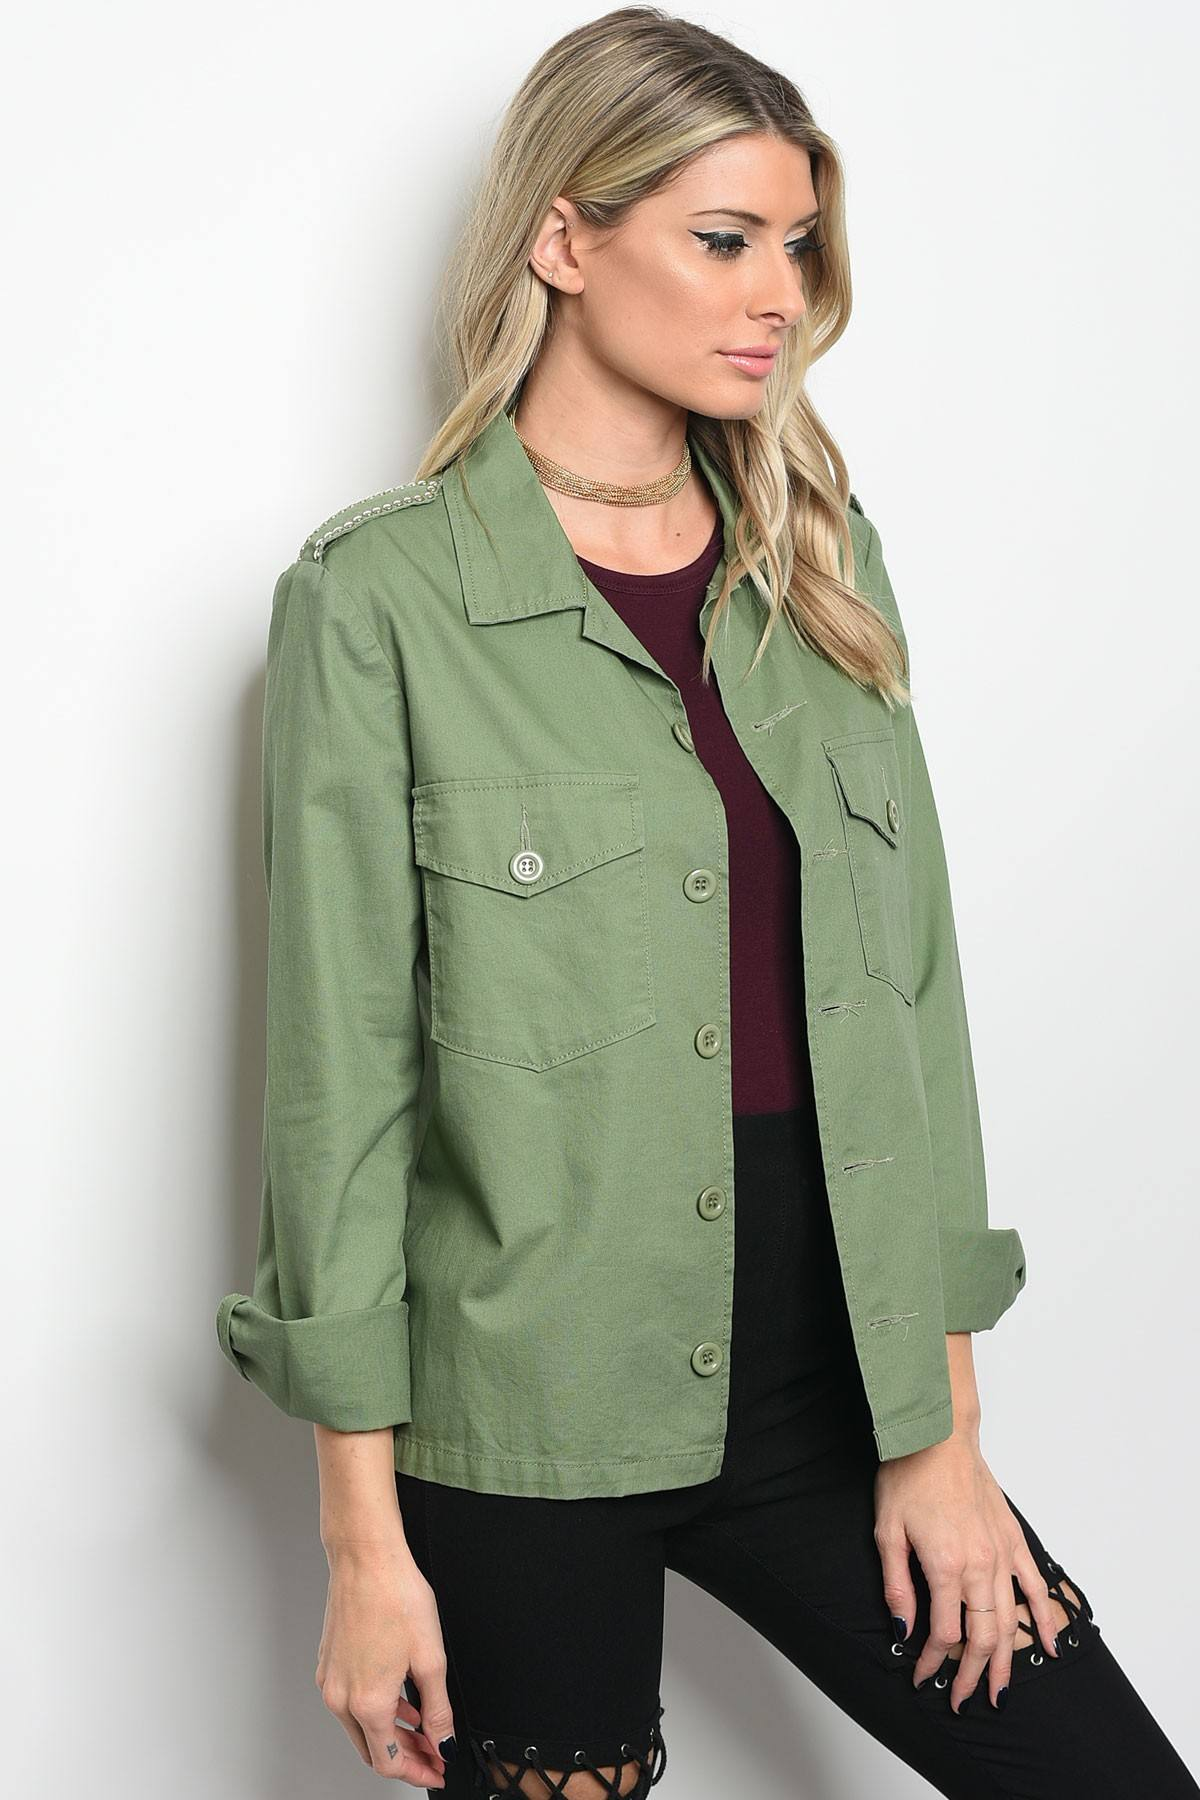 Ladies fashion light weight utility jacket with pocket details and a collard neckline-S-MY UPSCALE STORE